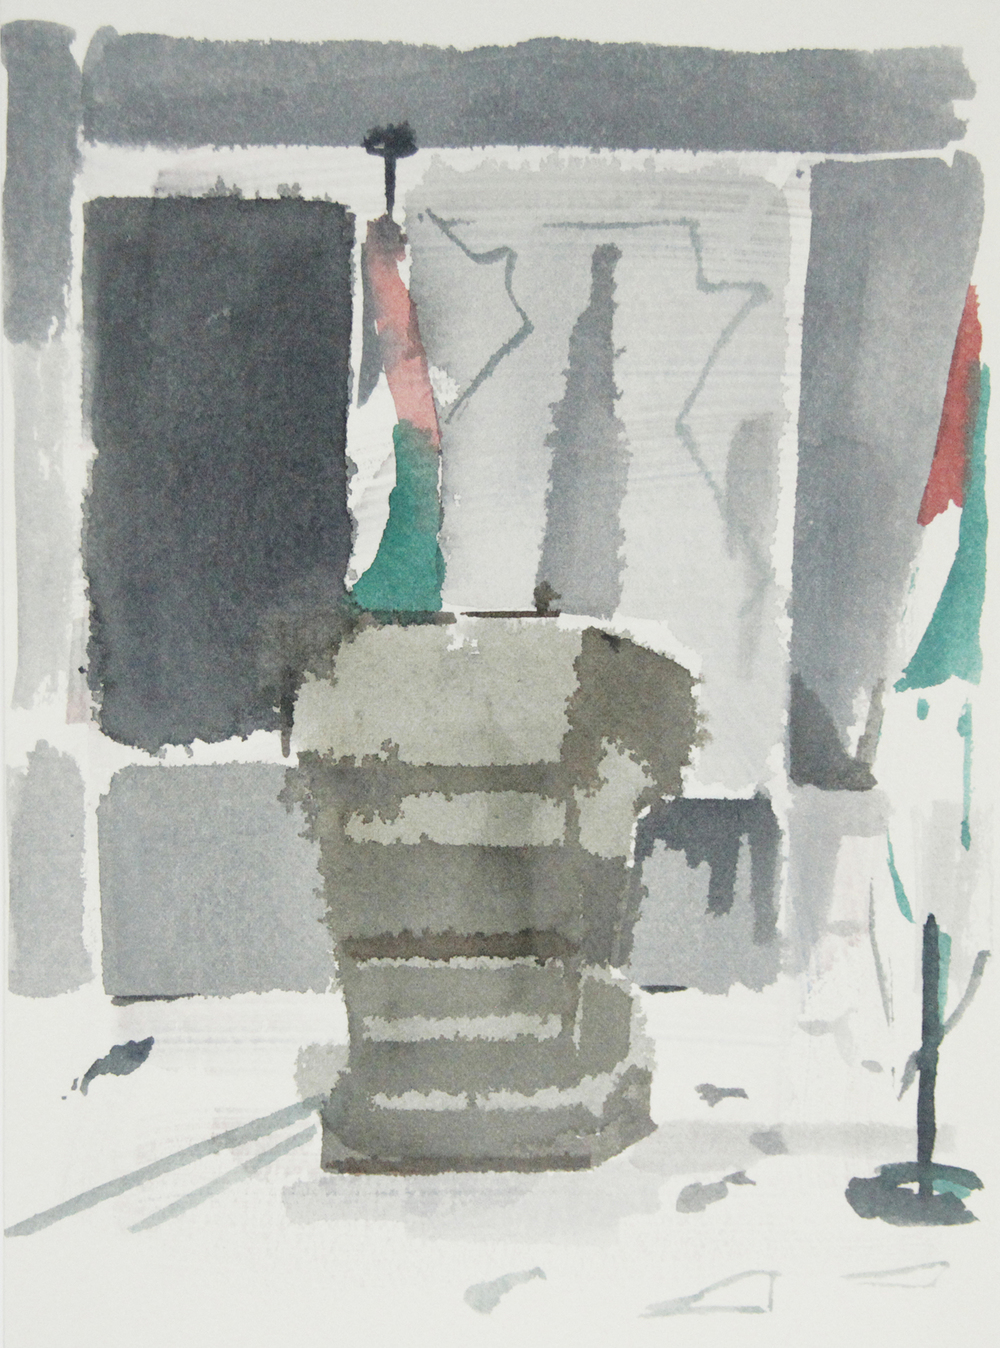 OCCUPIED TERRITORIES, 22.5 x 30.5cm, 2015